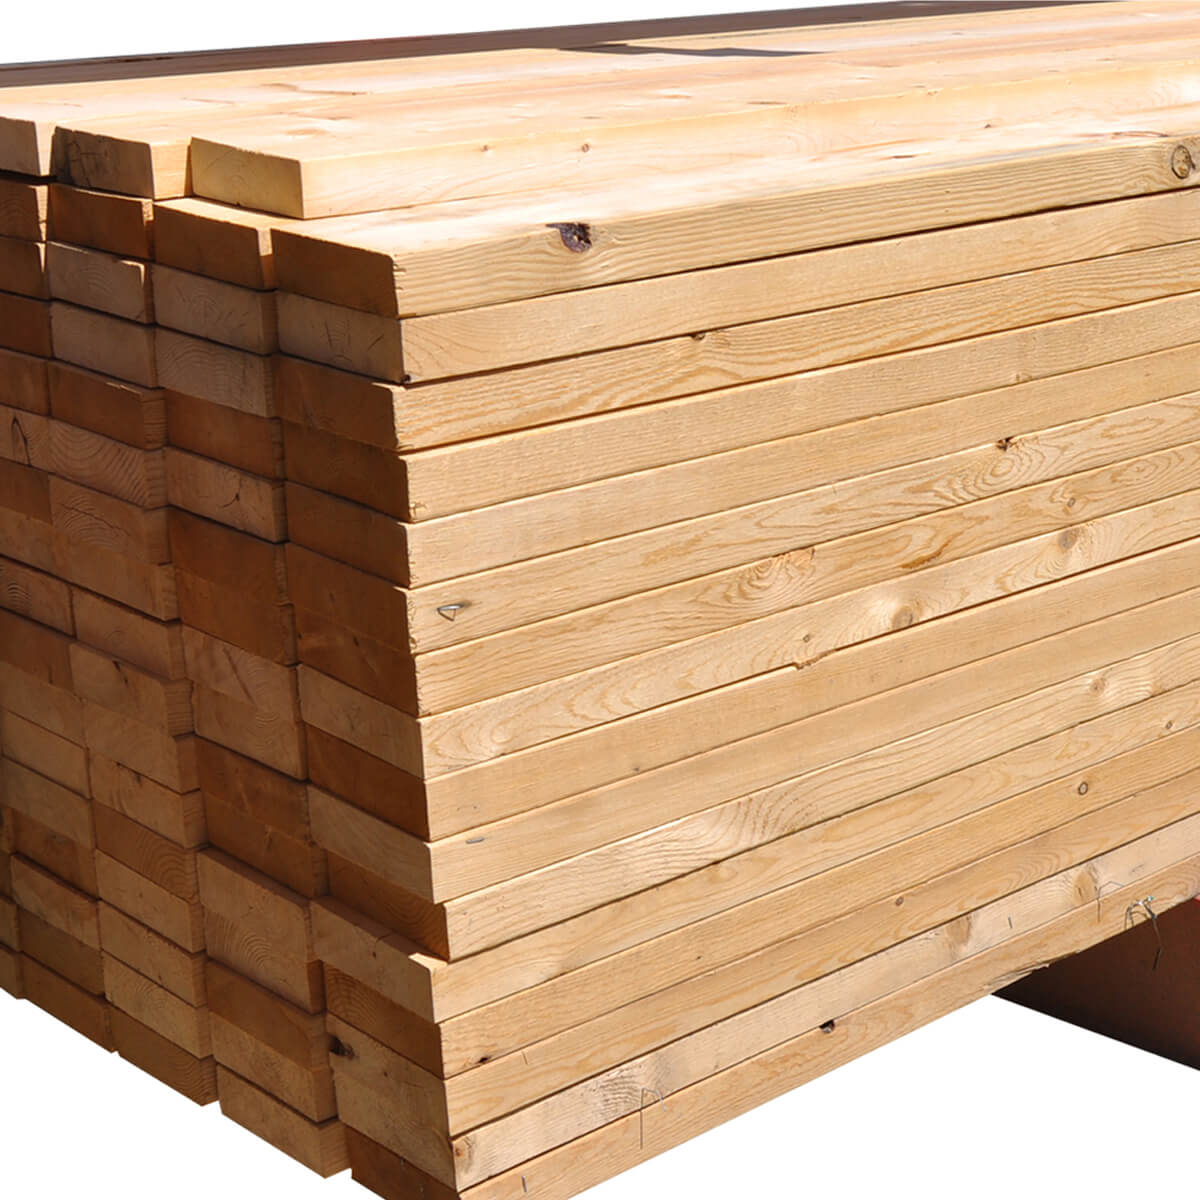 #2 Appearance Spruce Lumber - SPR #2 Appearance 2 x 6 x 16-ft